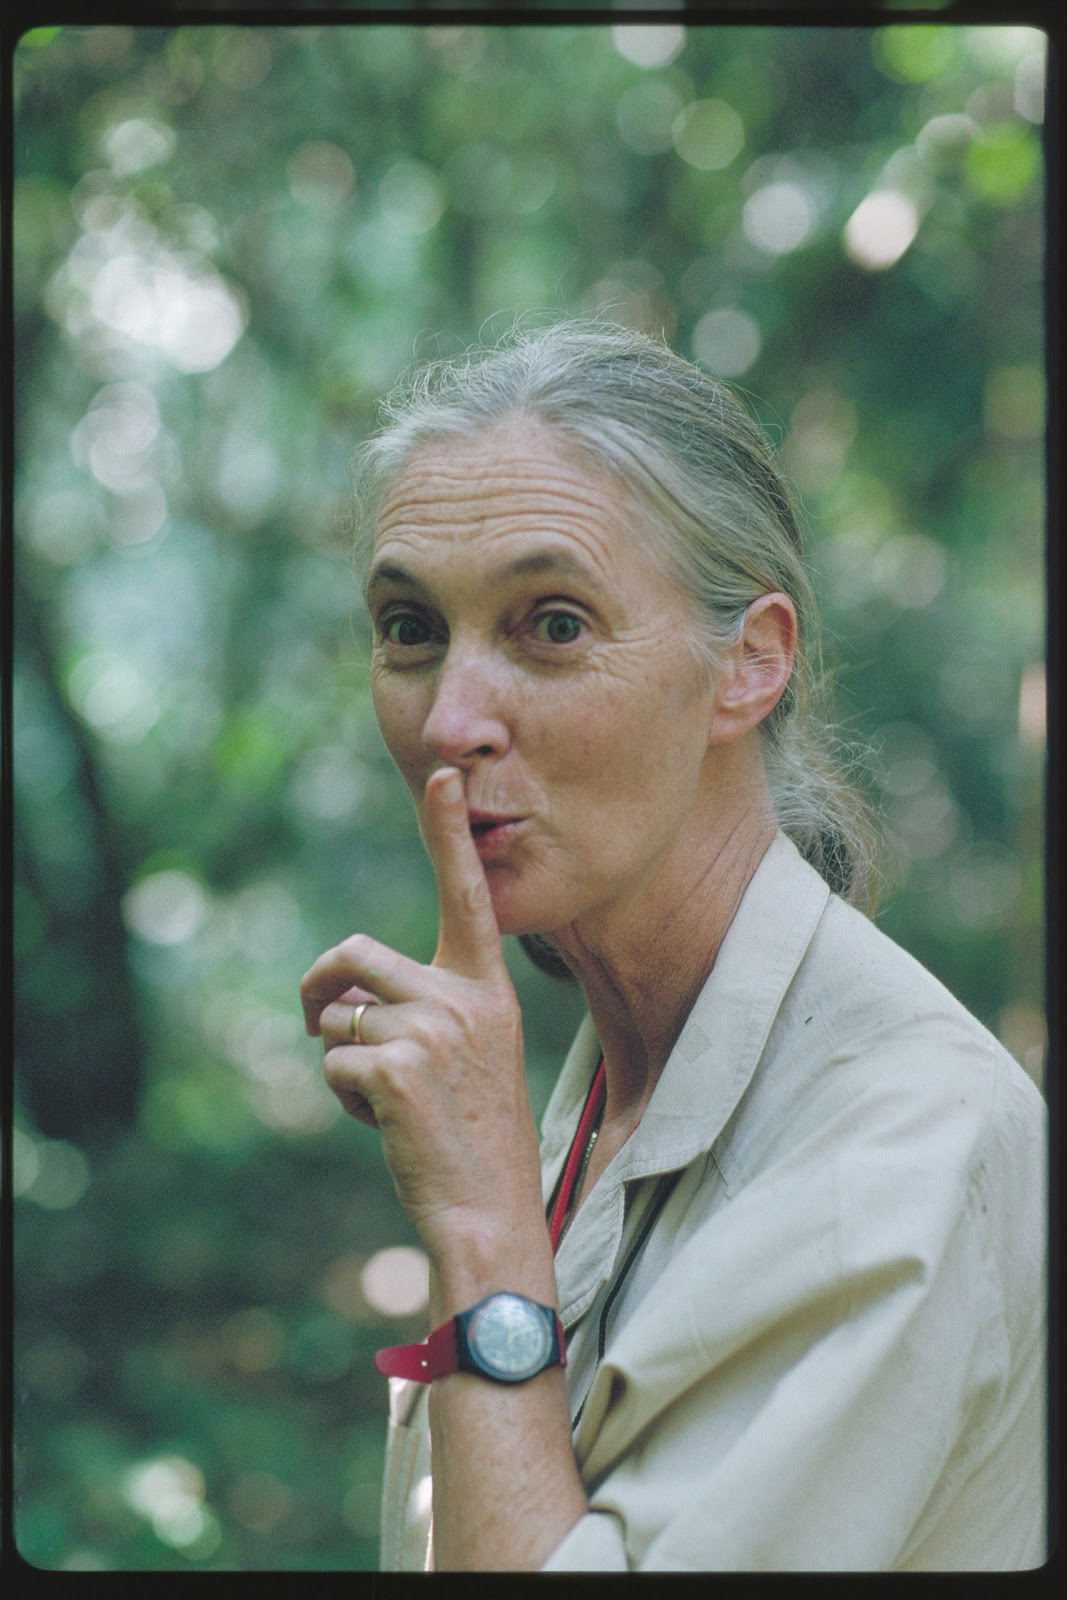 jane goodall At the invitation of a school friend, jane sails to kenya, meets dr louis  travel  back and forth between cambridge and gombe for several years  jane founds  the jane goodall institute's tchimpounga chimpanzee rehabilitation center in  the republic of  what methods did jane use to capture data she collected.